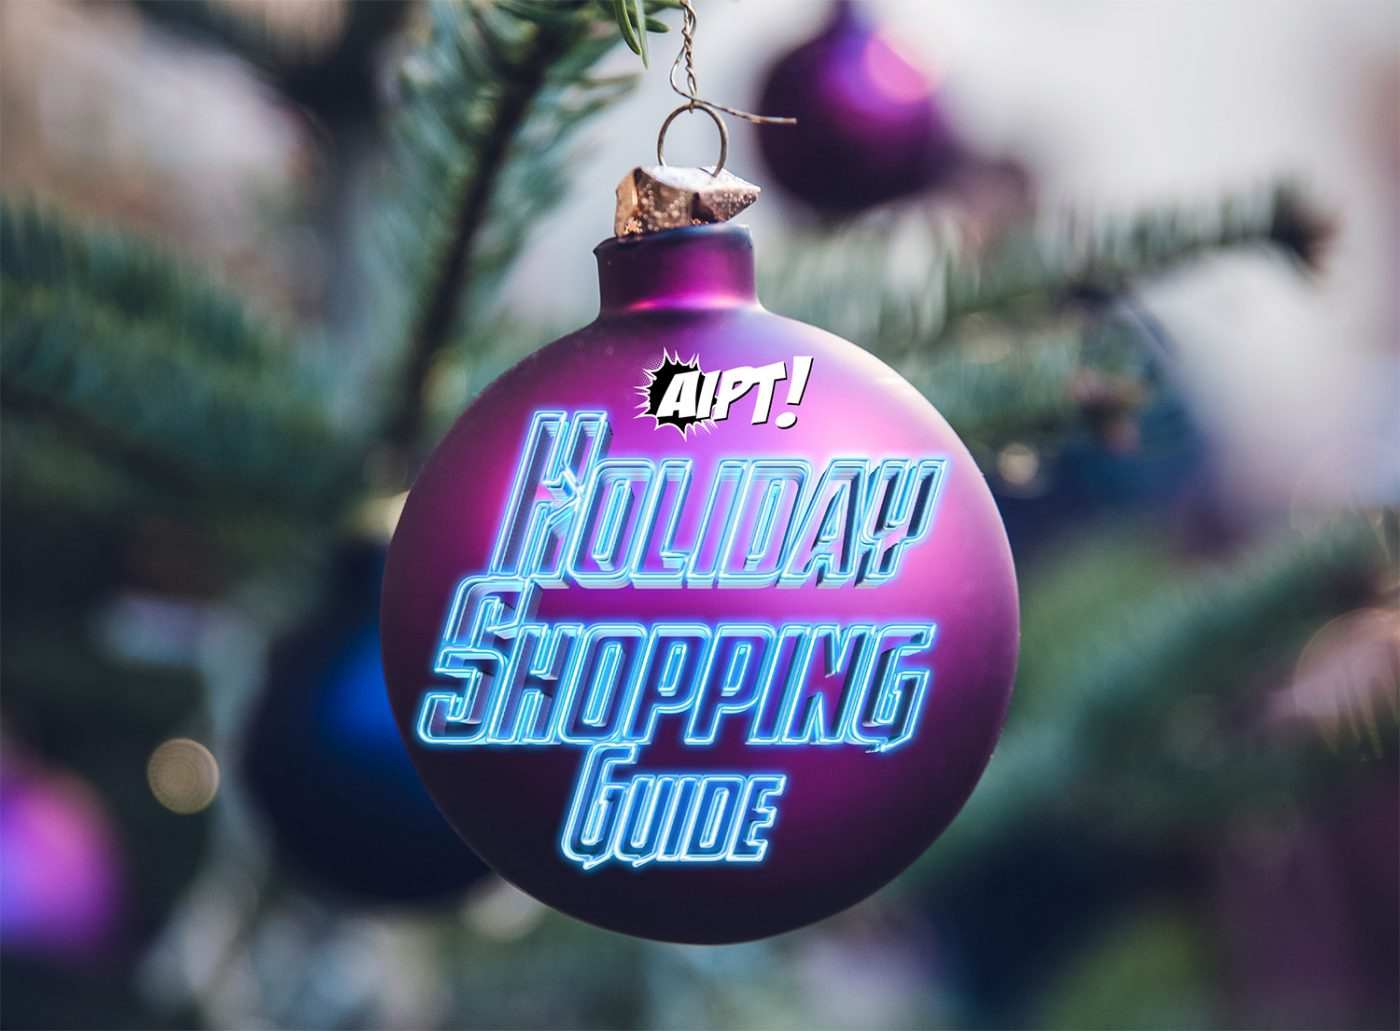 AiPT!'s 2017 Holiday Shopping Guide